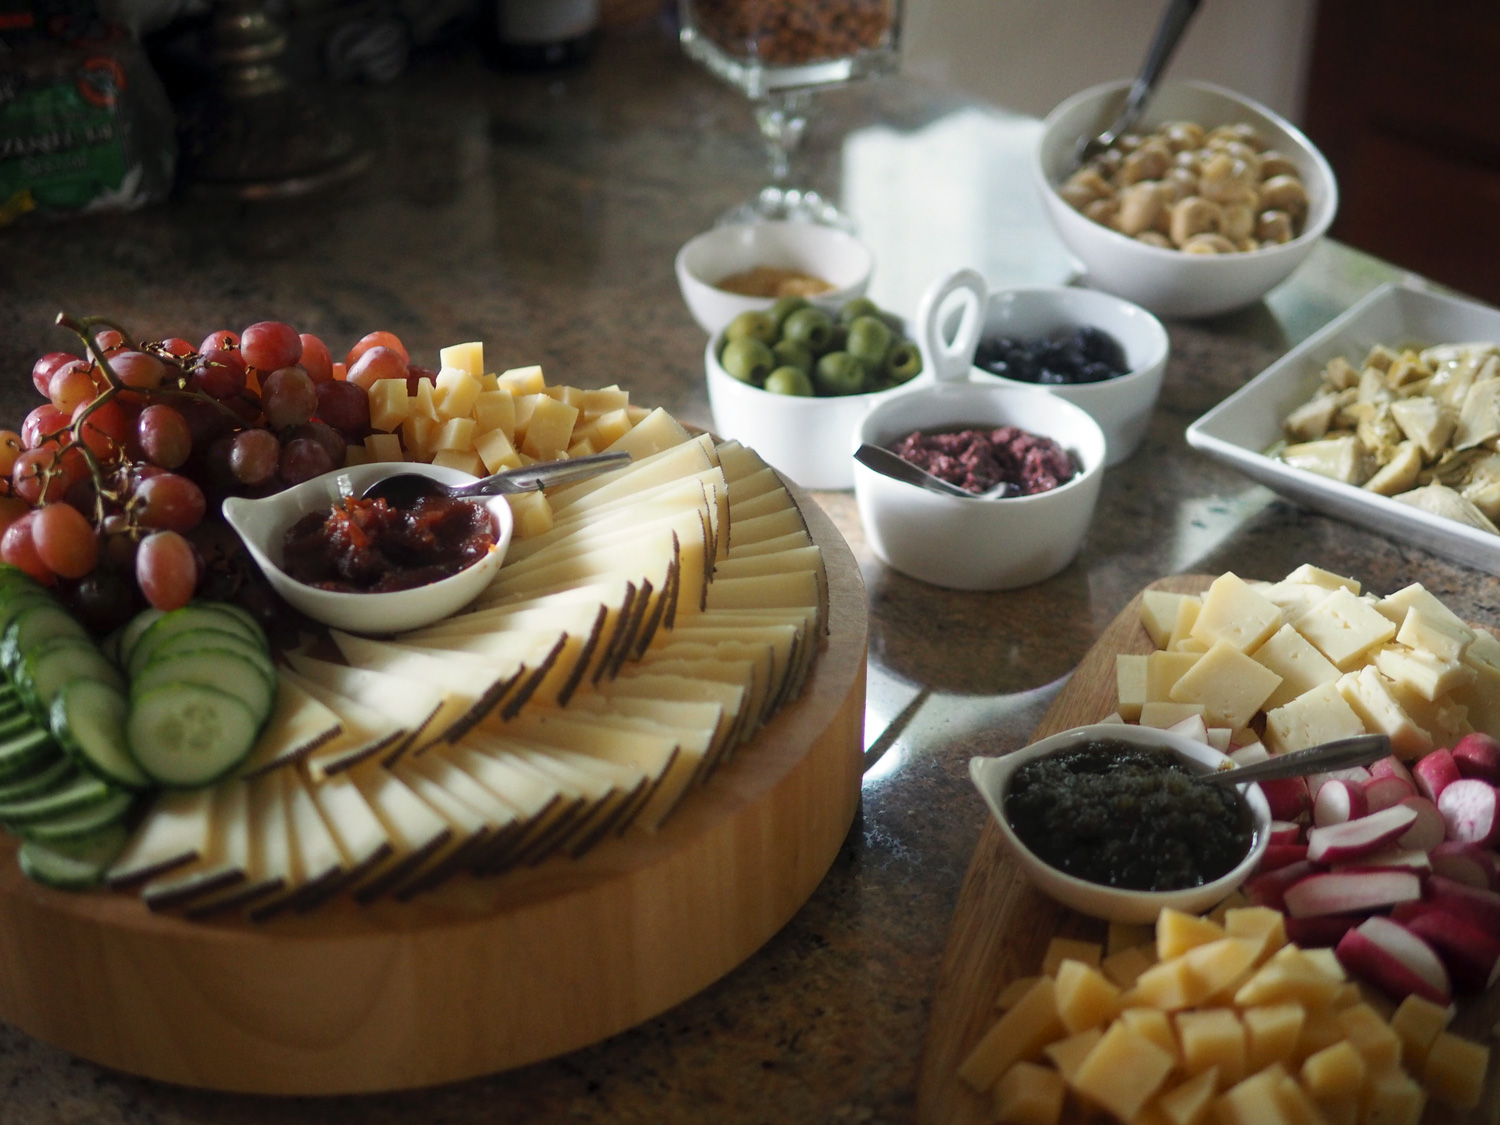 Abundant cheese platters with jams and grapes, cucumbers and radishes.